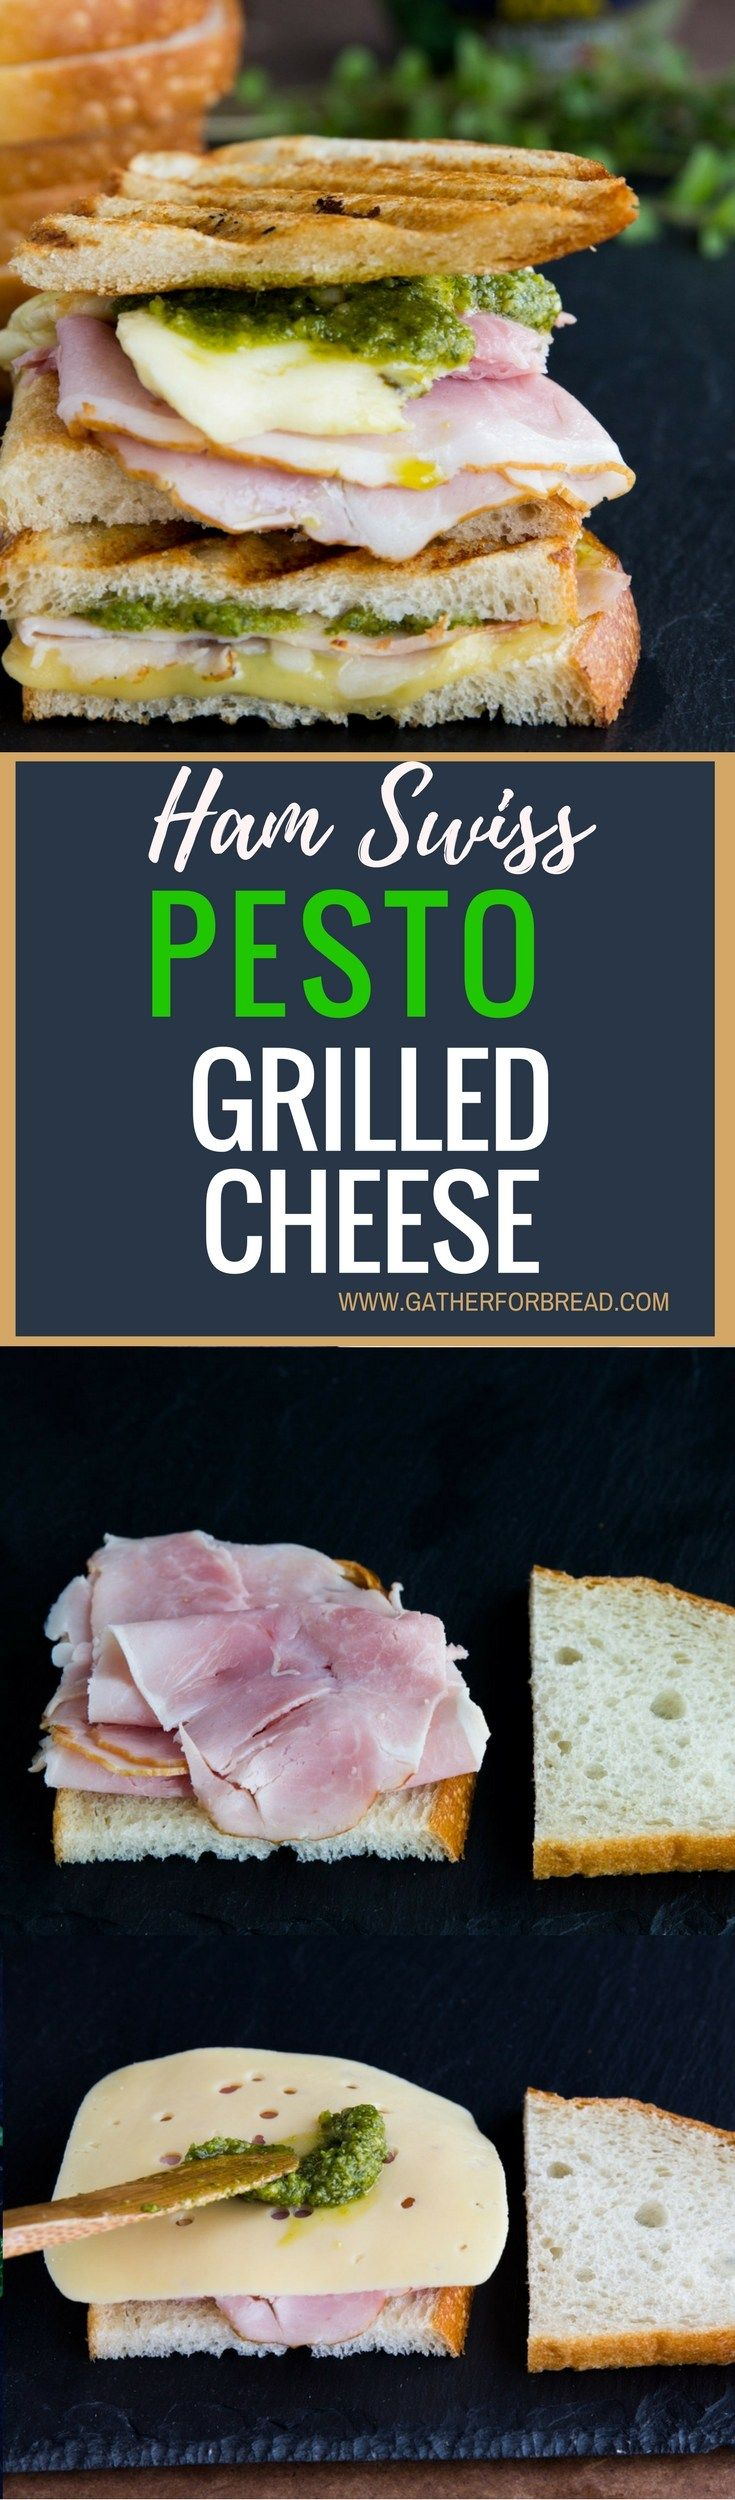 Ham Swiss Pesto Grilled Cheese - Layers of deli ham, Swiss cheese and pesto combine for a perfect lunch sandwich. Grilled cheese perfection with a twist.